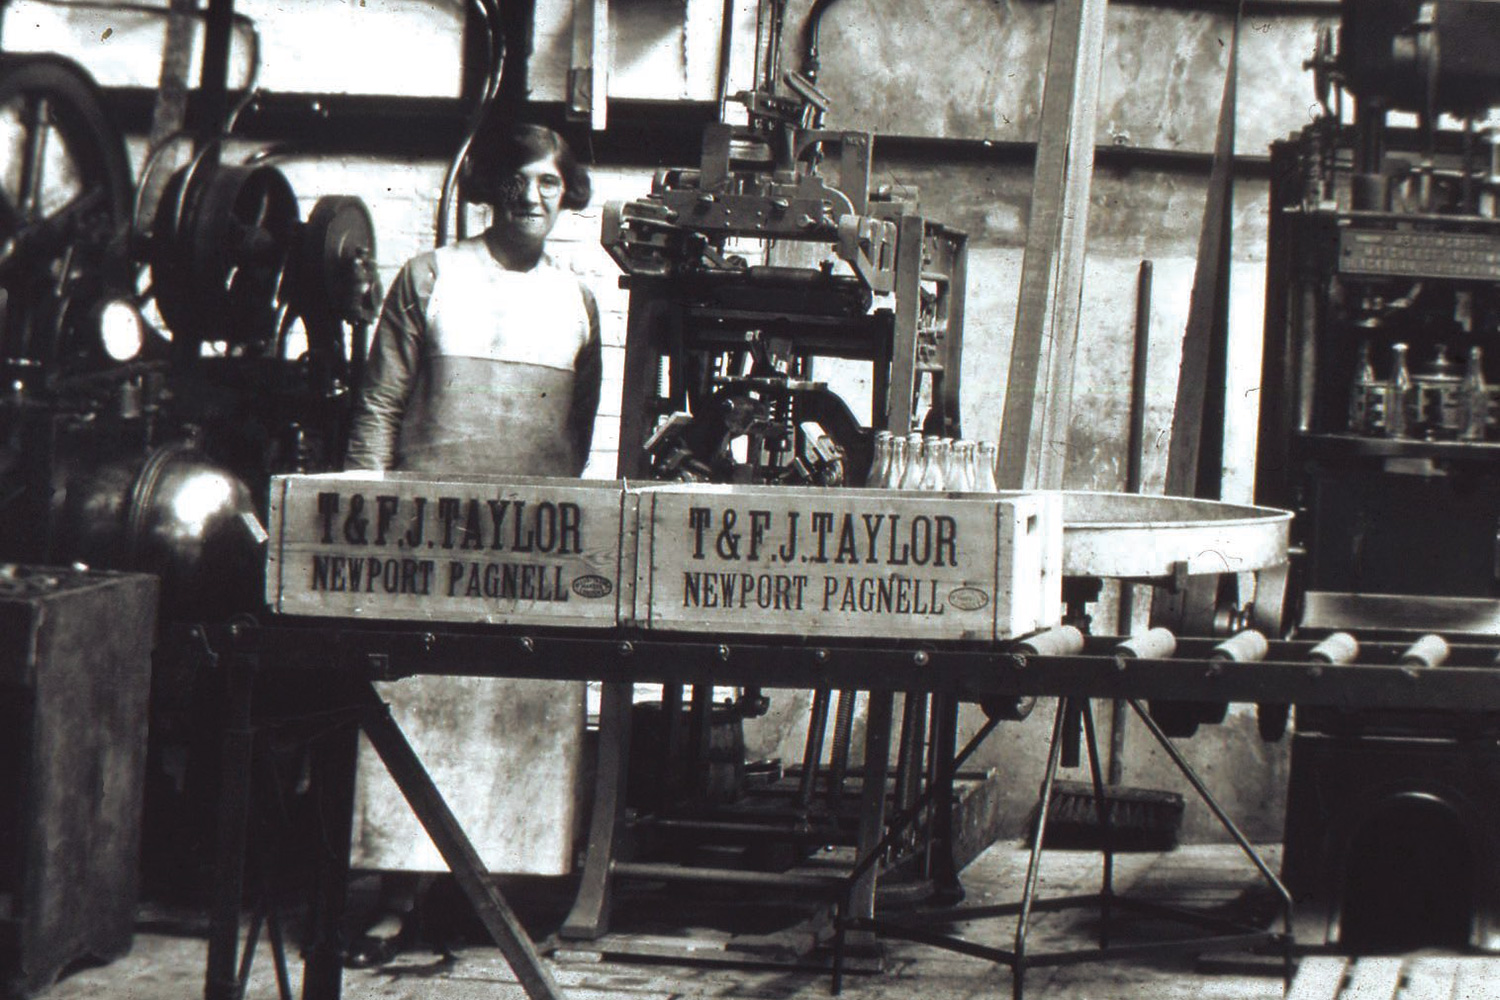 The factory under the auspices of William Taylor's sons, Thomas and Frederick James. As well as mustard, the factory also produced soda water. Black and white images courtesy of the  Newport Pagnell Historic Society